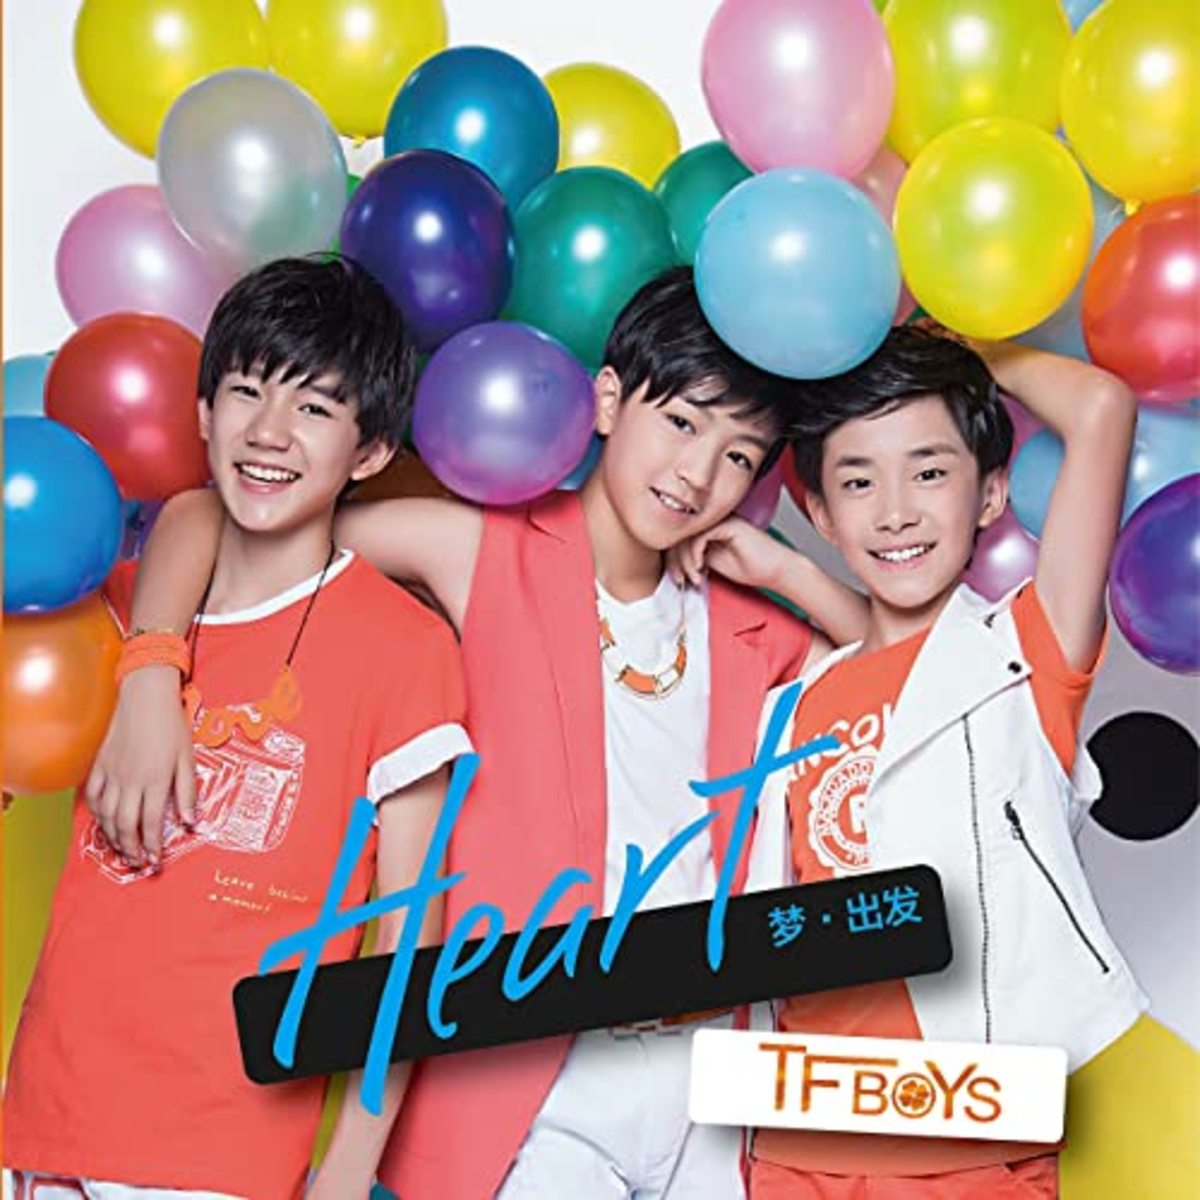 The album 'Heart, Dream & Start', released in 2013: it is one of the most famous albums by TFBOYS.